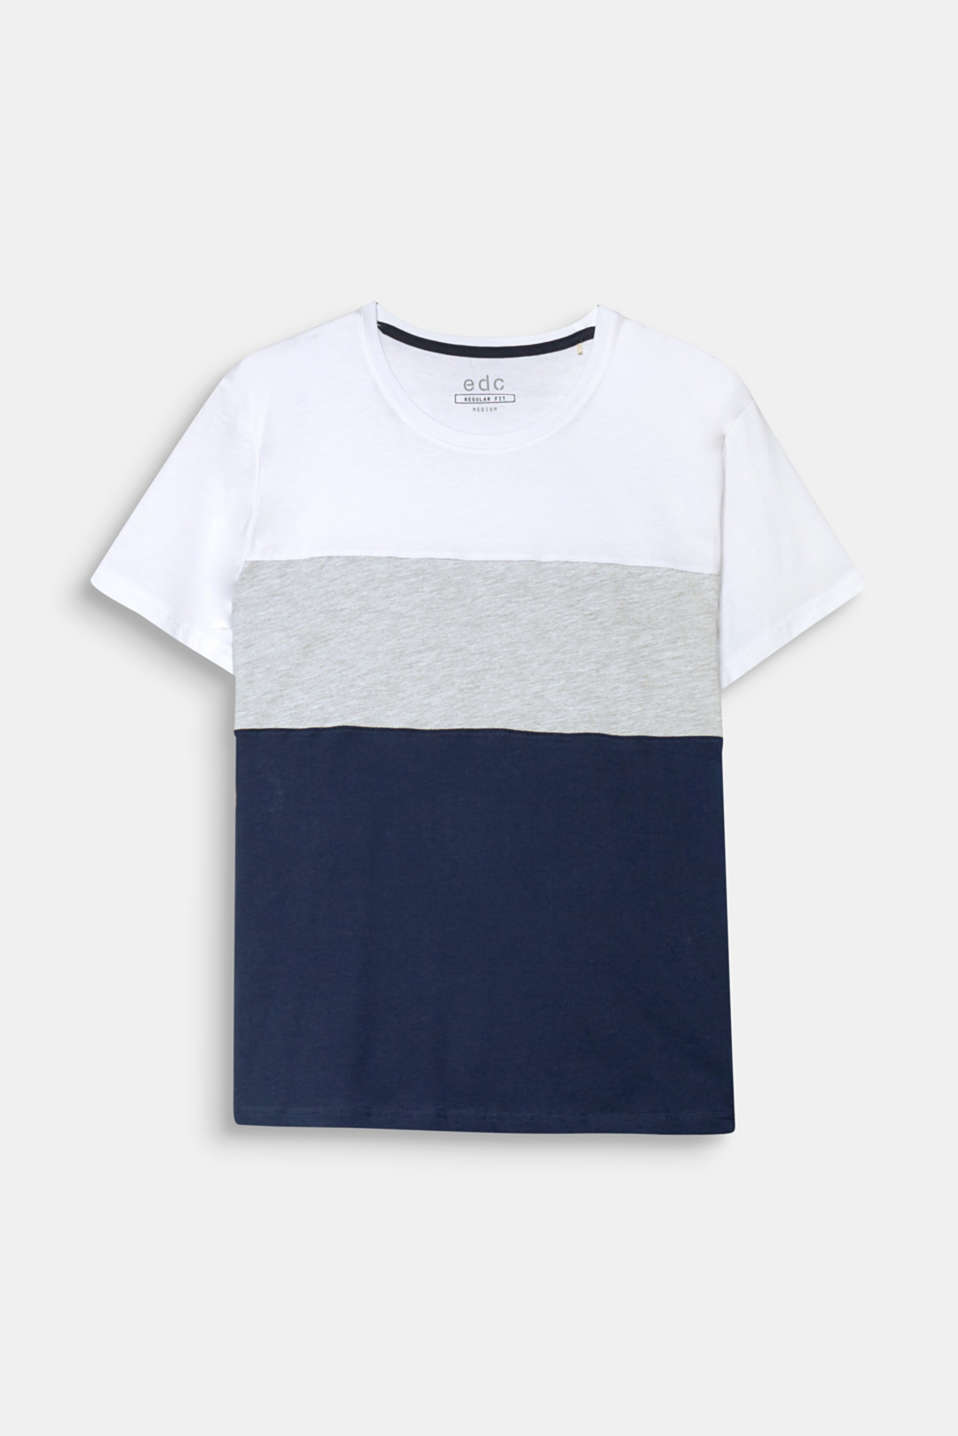 Plain-coloured jersey meets melange jersey: Block stripes with an exciting mix of textures adorn this T-shirt.